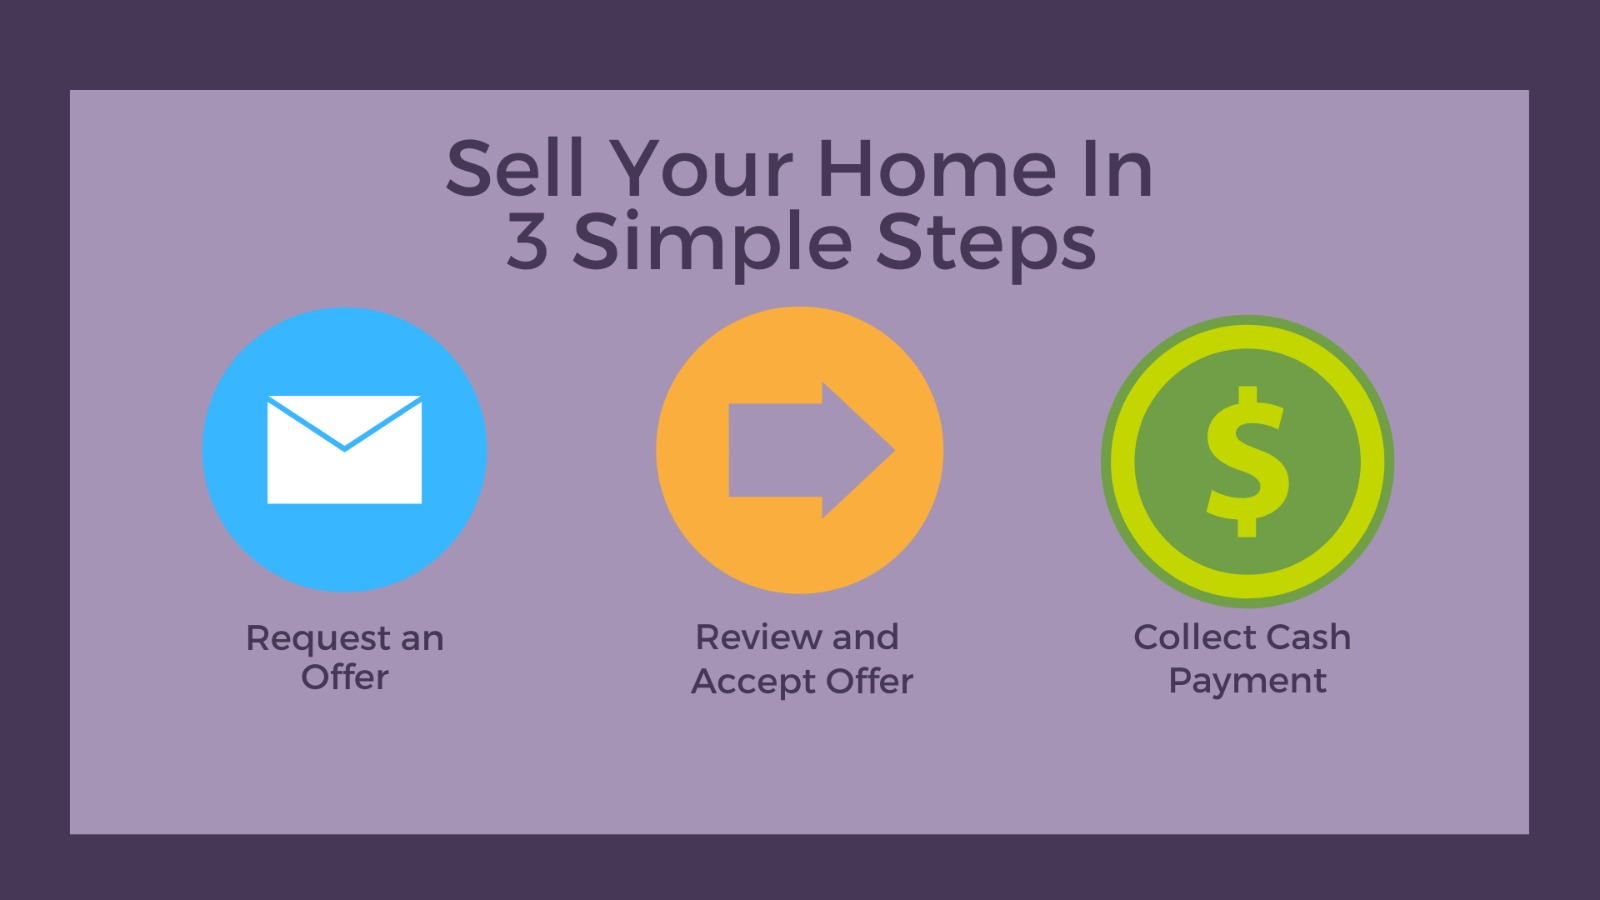 With the easy 3 steps process you can always sell your house fast for cash to Zvestors in DC, Maryland and Virginia